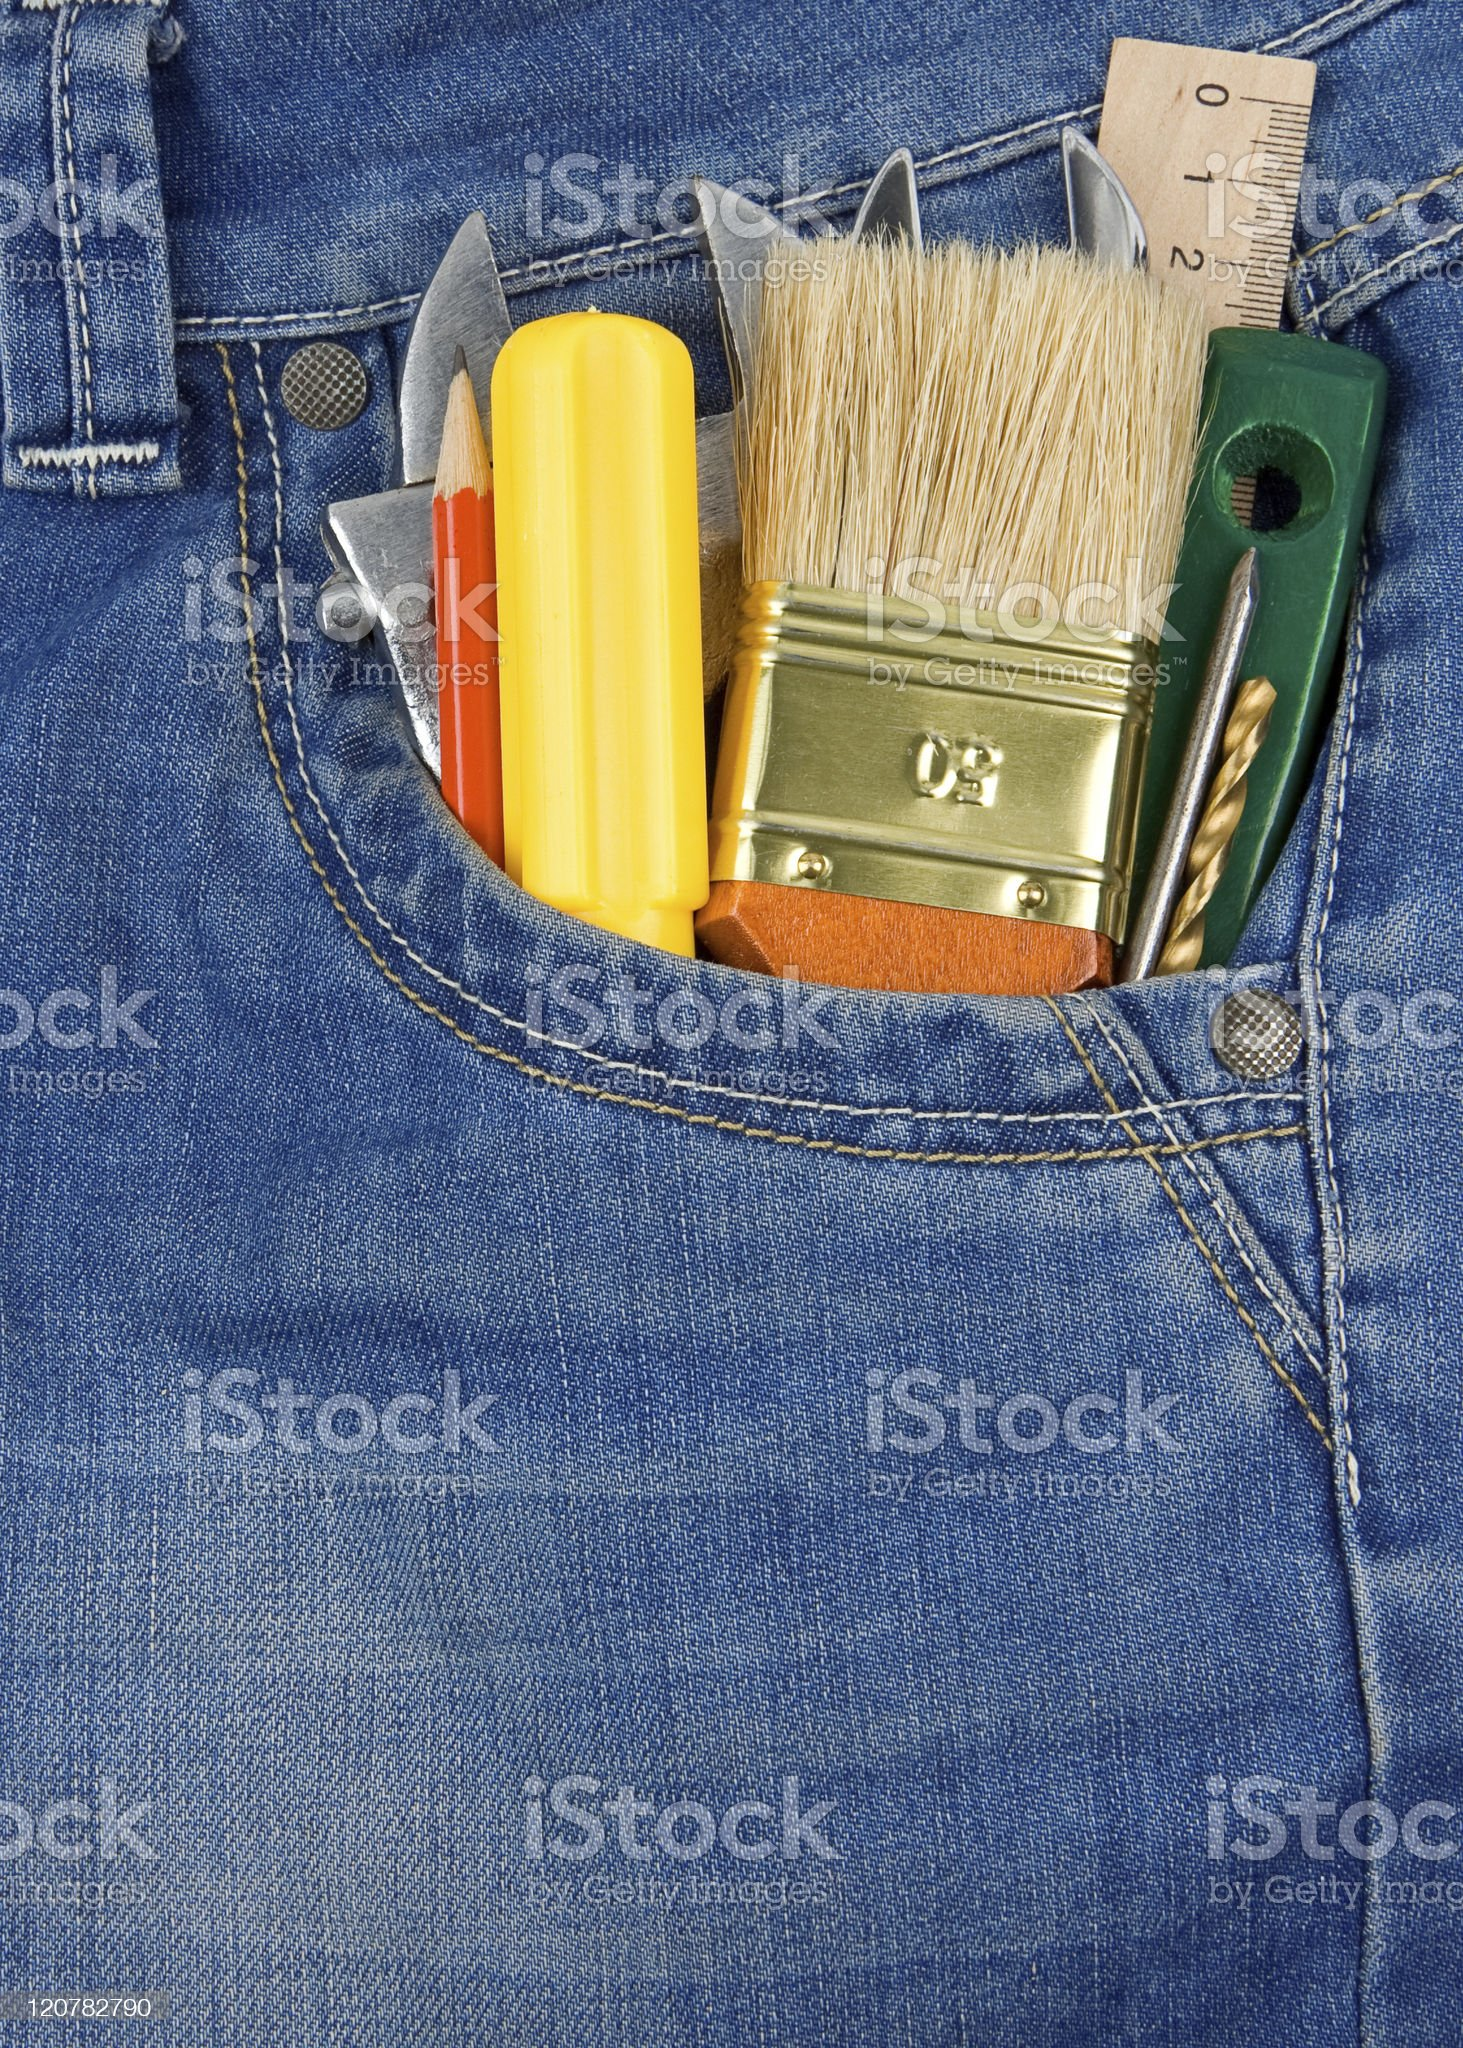 tools and instruments in jeans pocket royalty-free stock photo